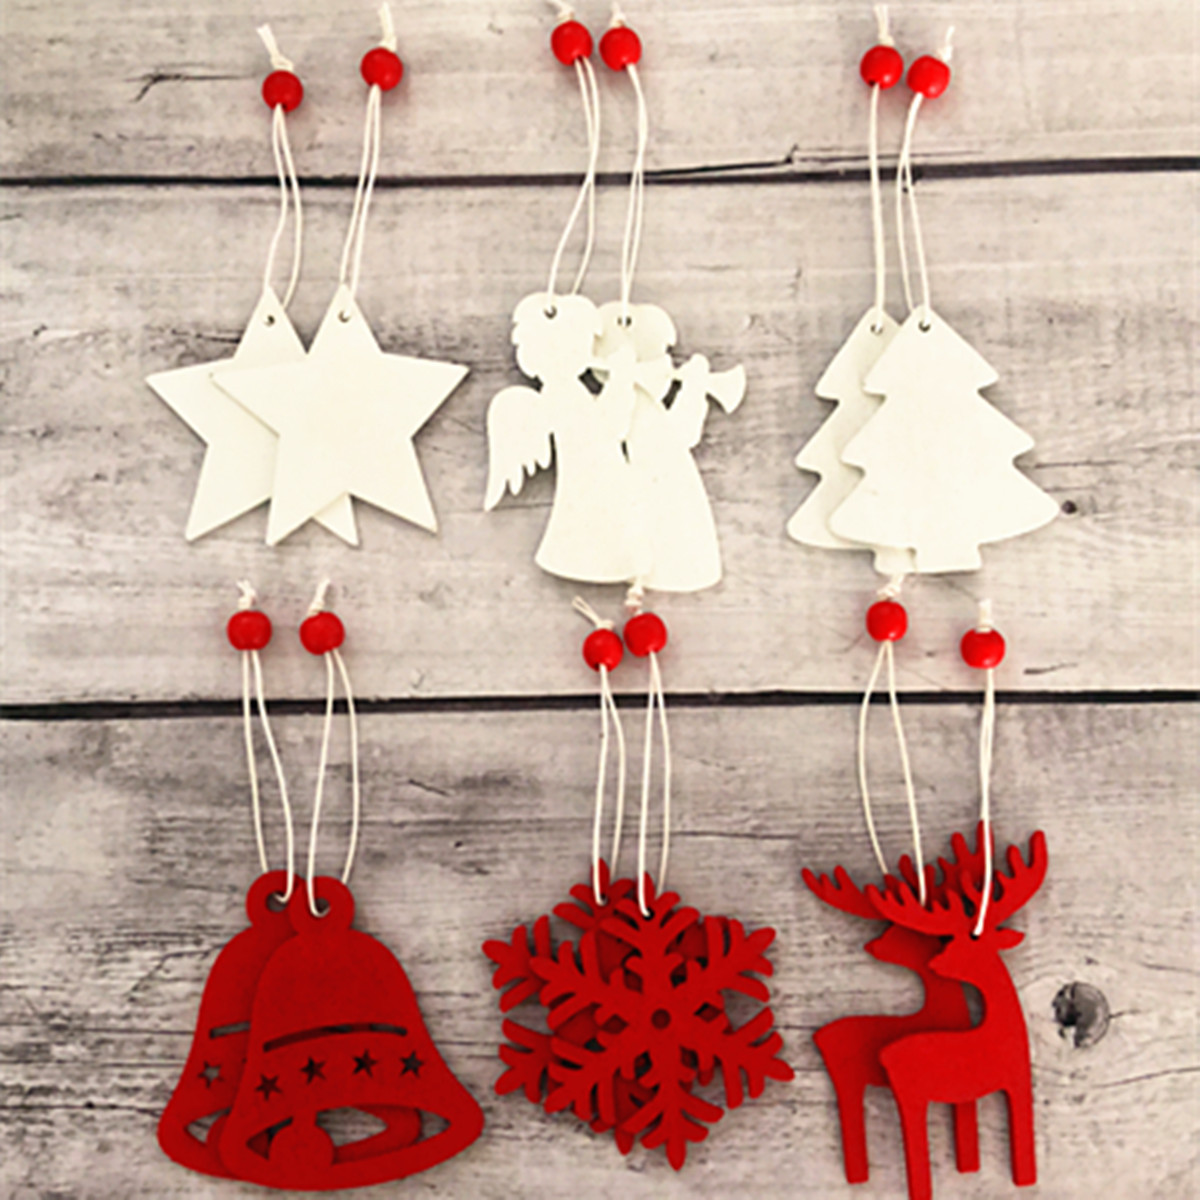 Pack Of 10pcs Wooden Christmas Decoration Ornaments Pendants For  Festival Merry Tree